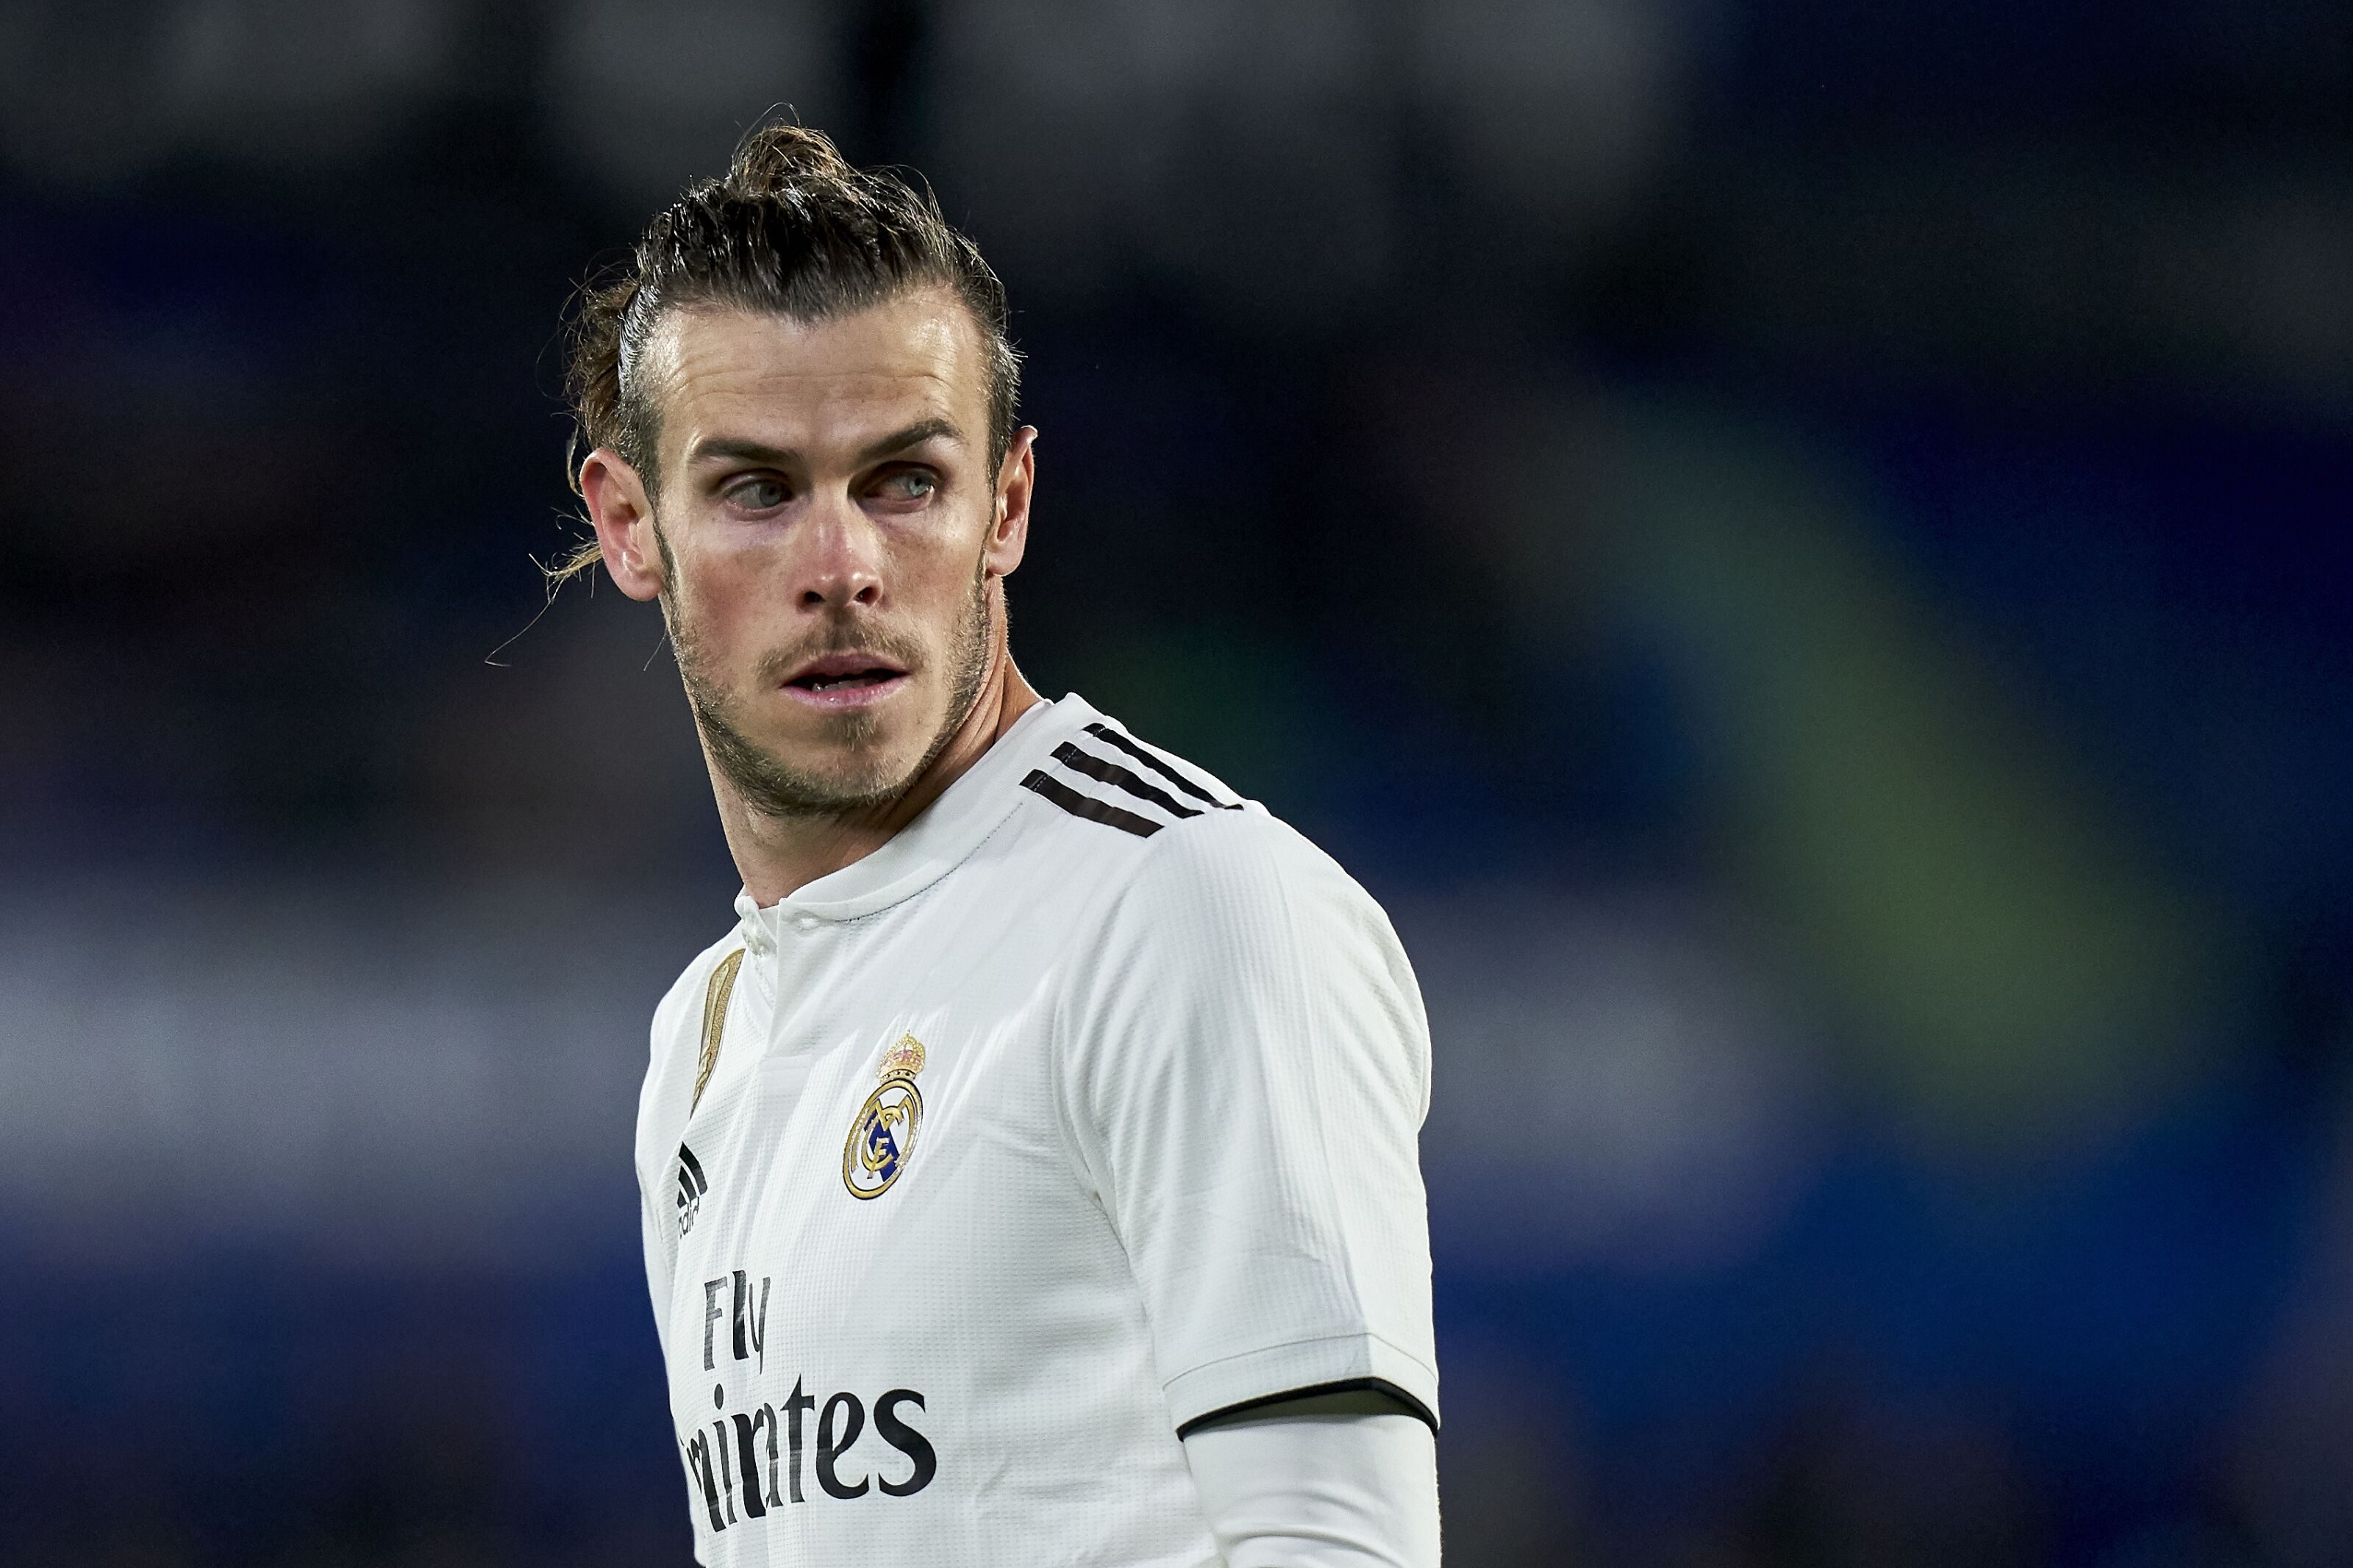 Real Madrid: Gareth Bale receives a £1m per week offer from China